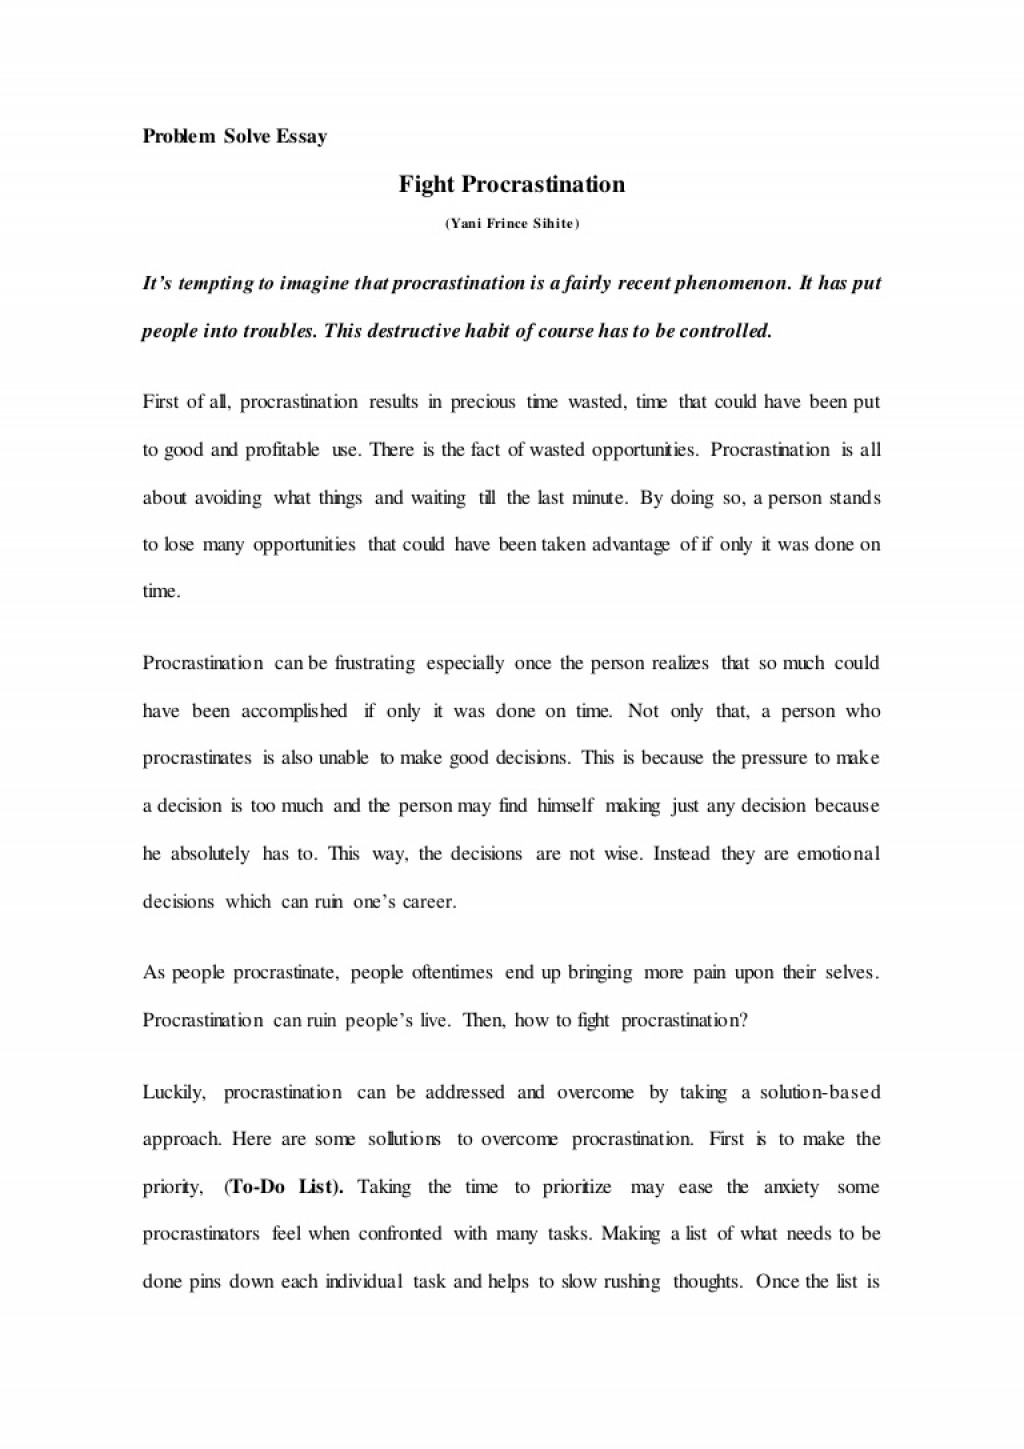 002 Essay Example Problemsolveessay Thumbnail Breathtaking Procrastination Introduction Cause And Effect Writing Large